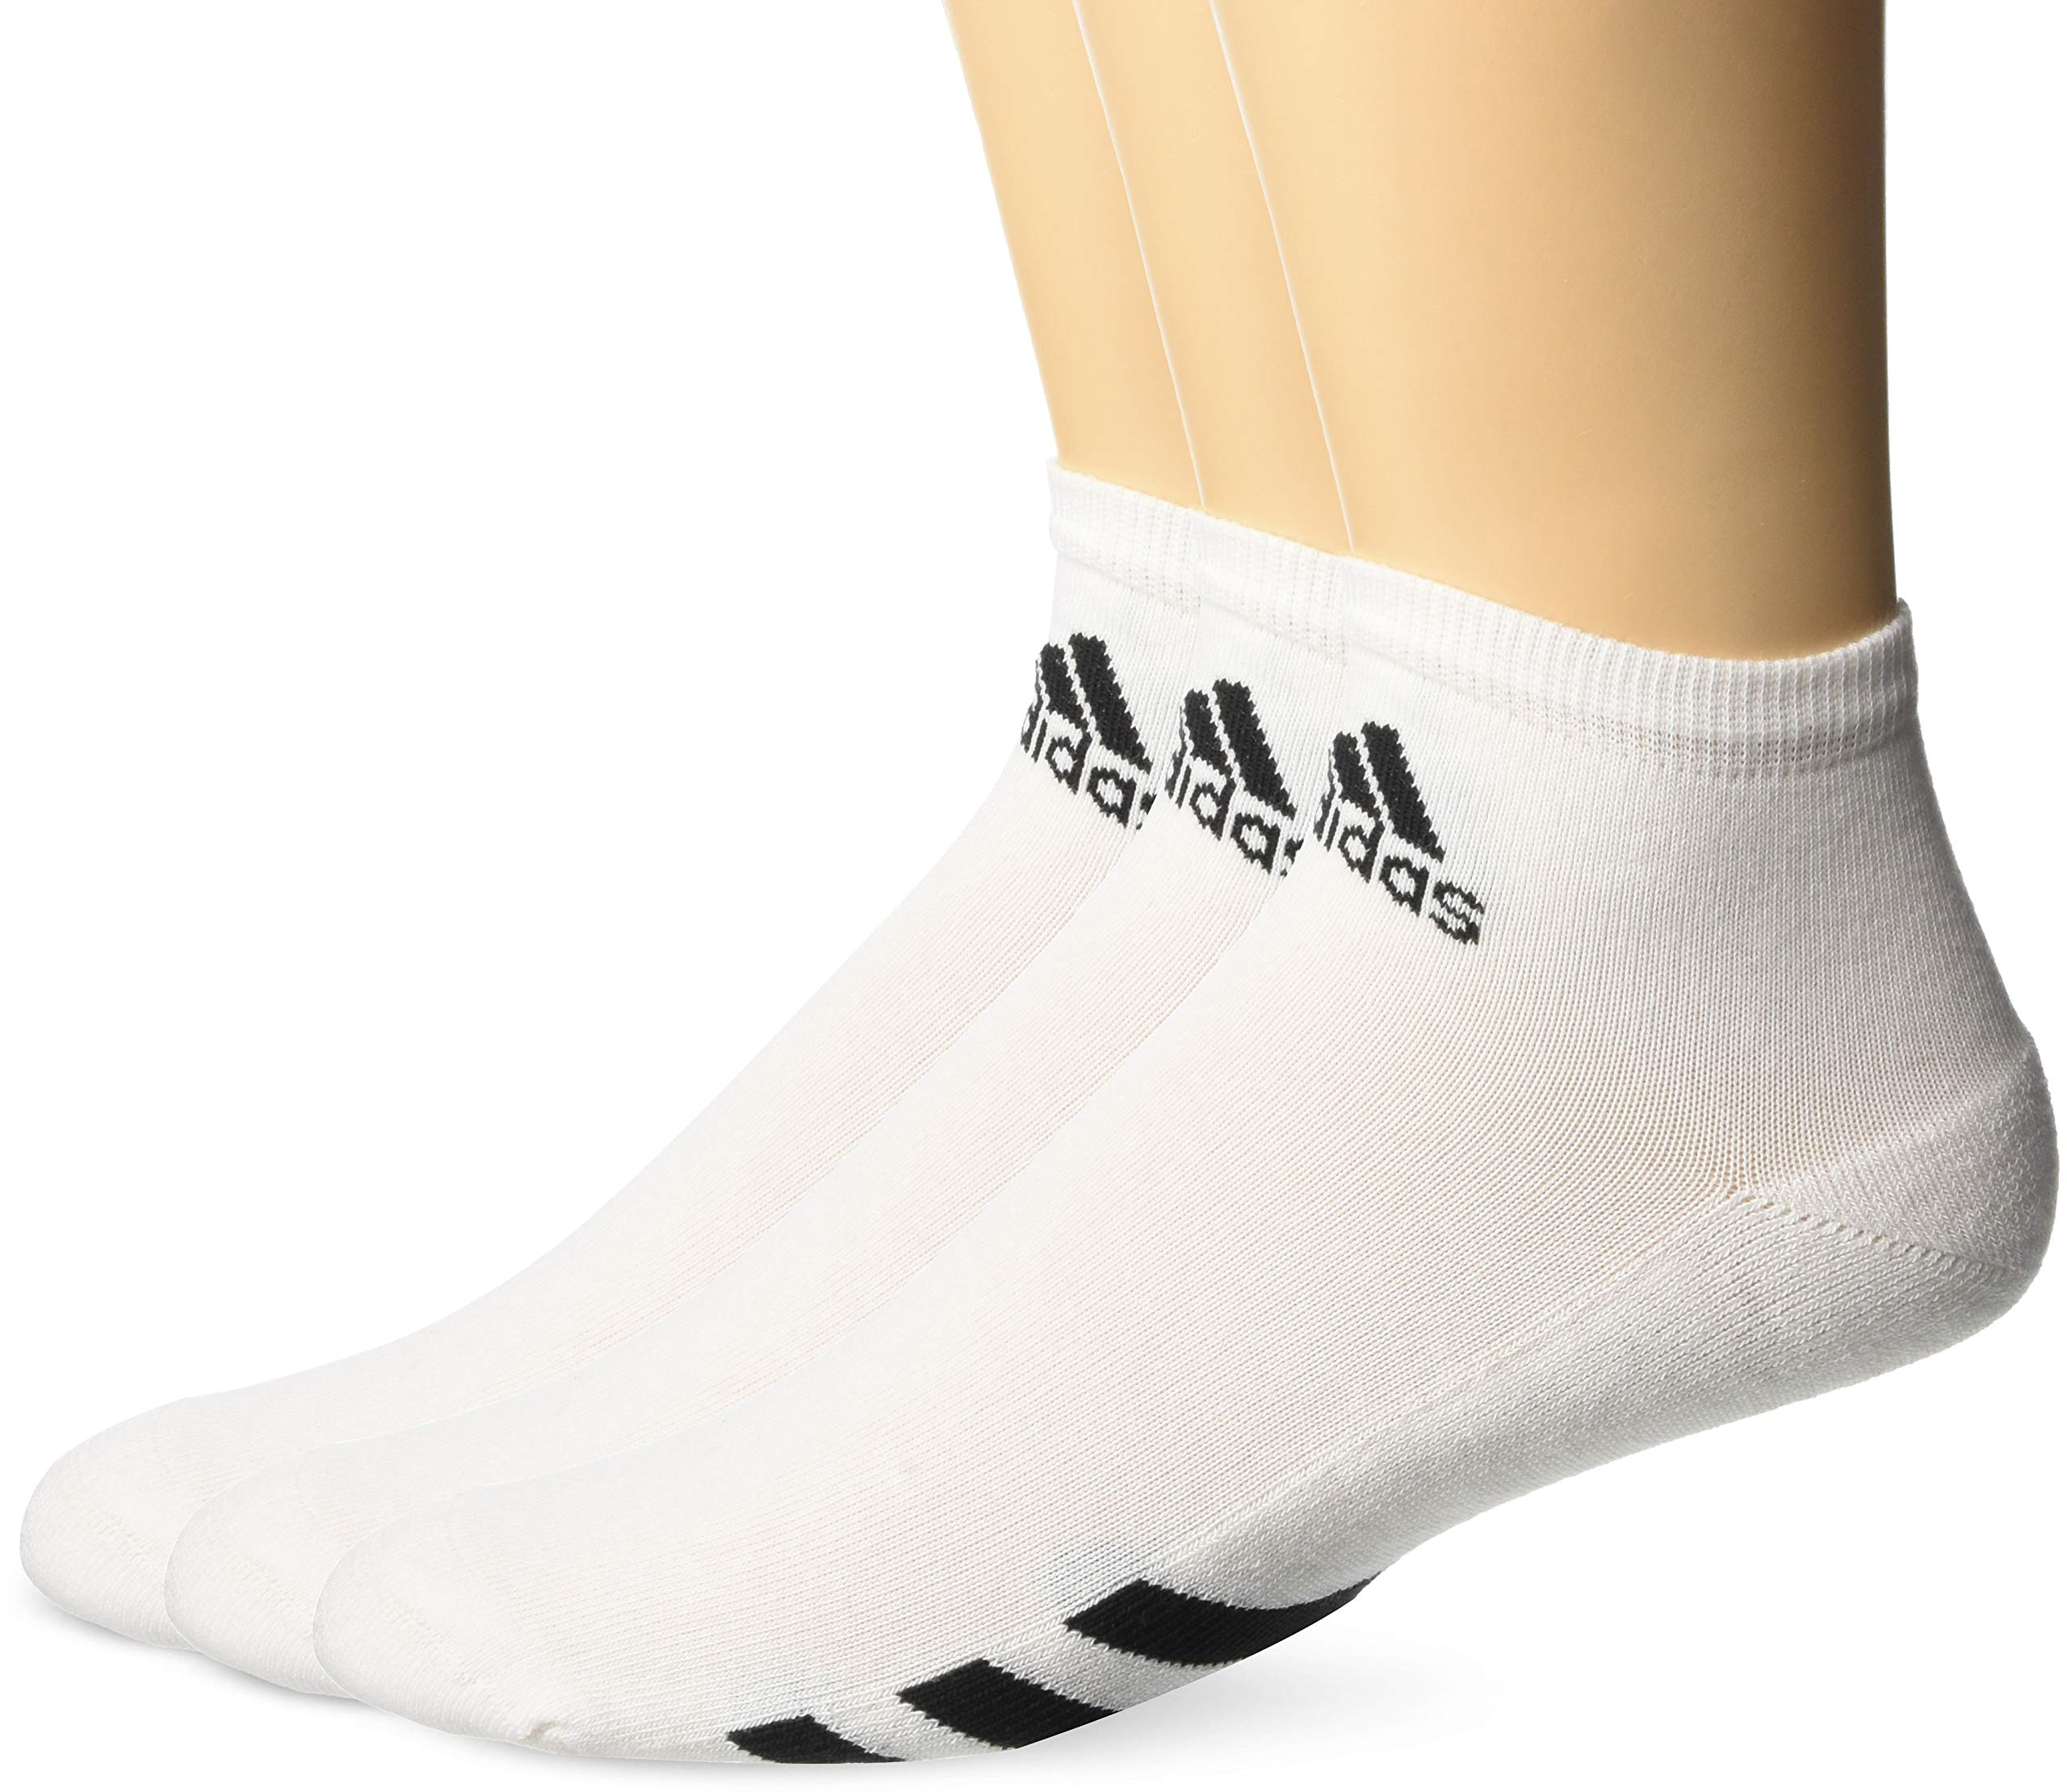 adidas Golf Men's 3-Pack Ankle Sock, White, 11-14 by adidas